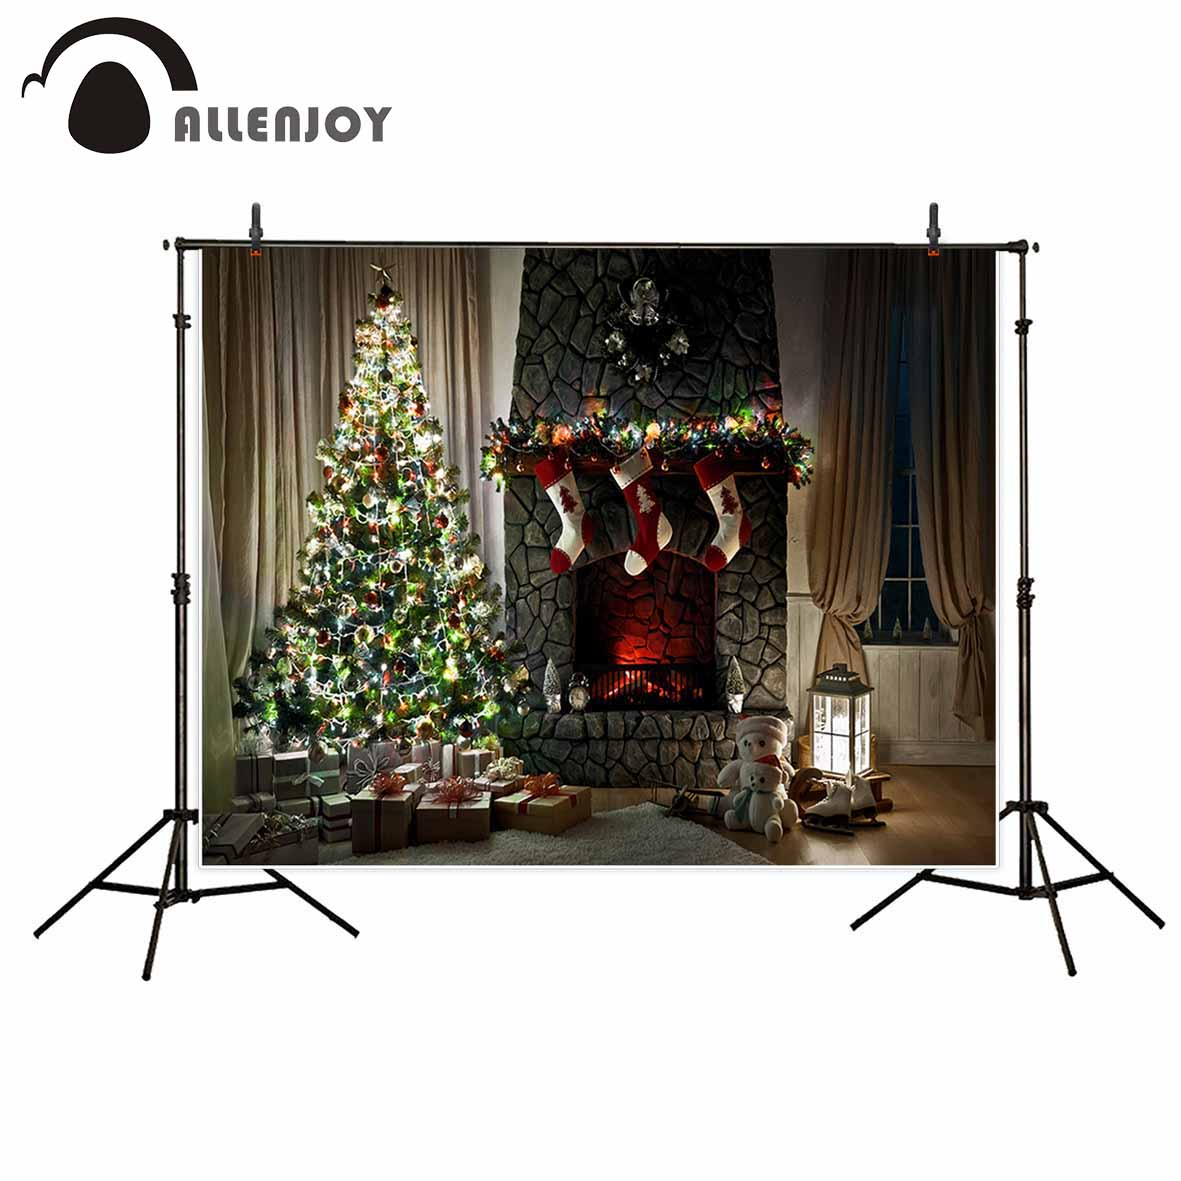 Allenjoy photography backdrop Christmas glitter fireplace tree stone room background photocall photo prop original design